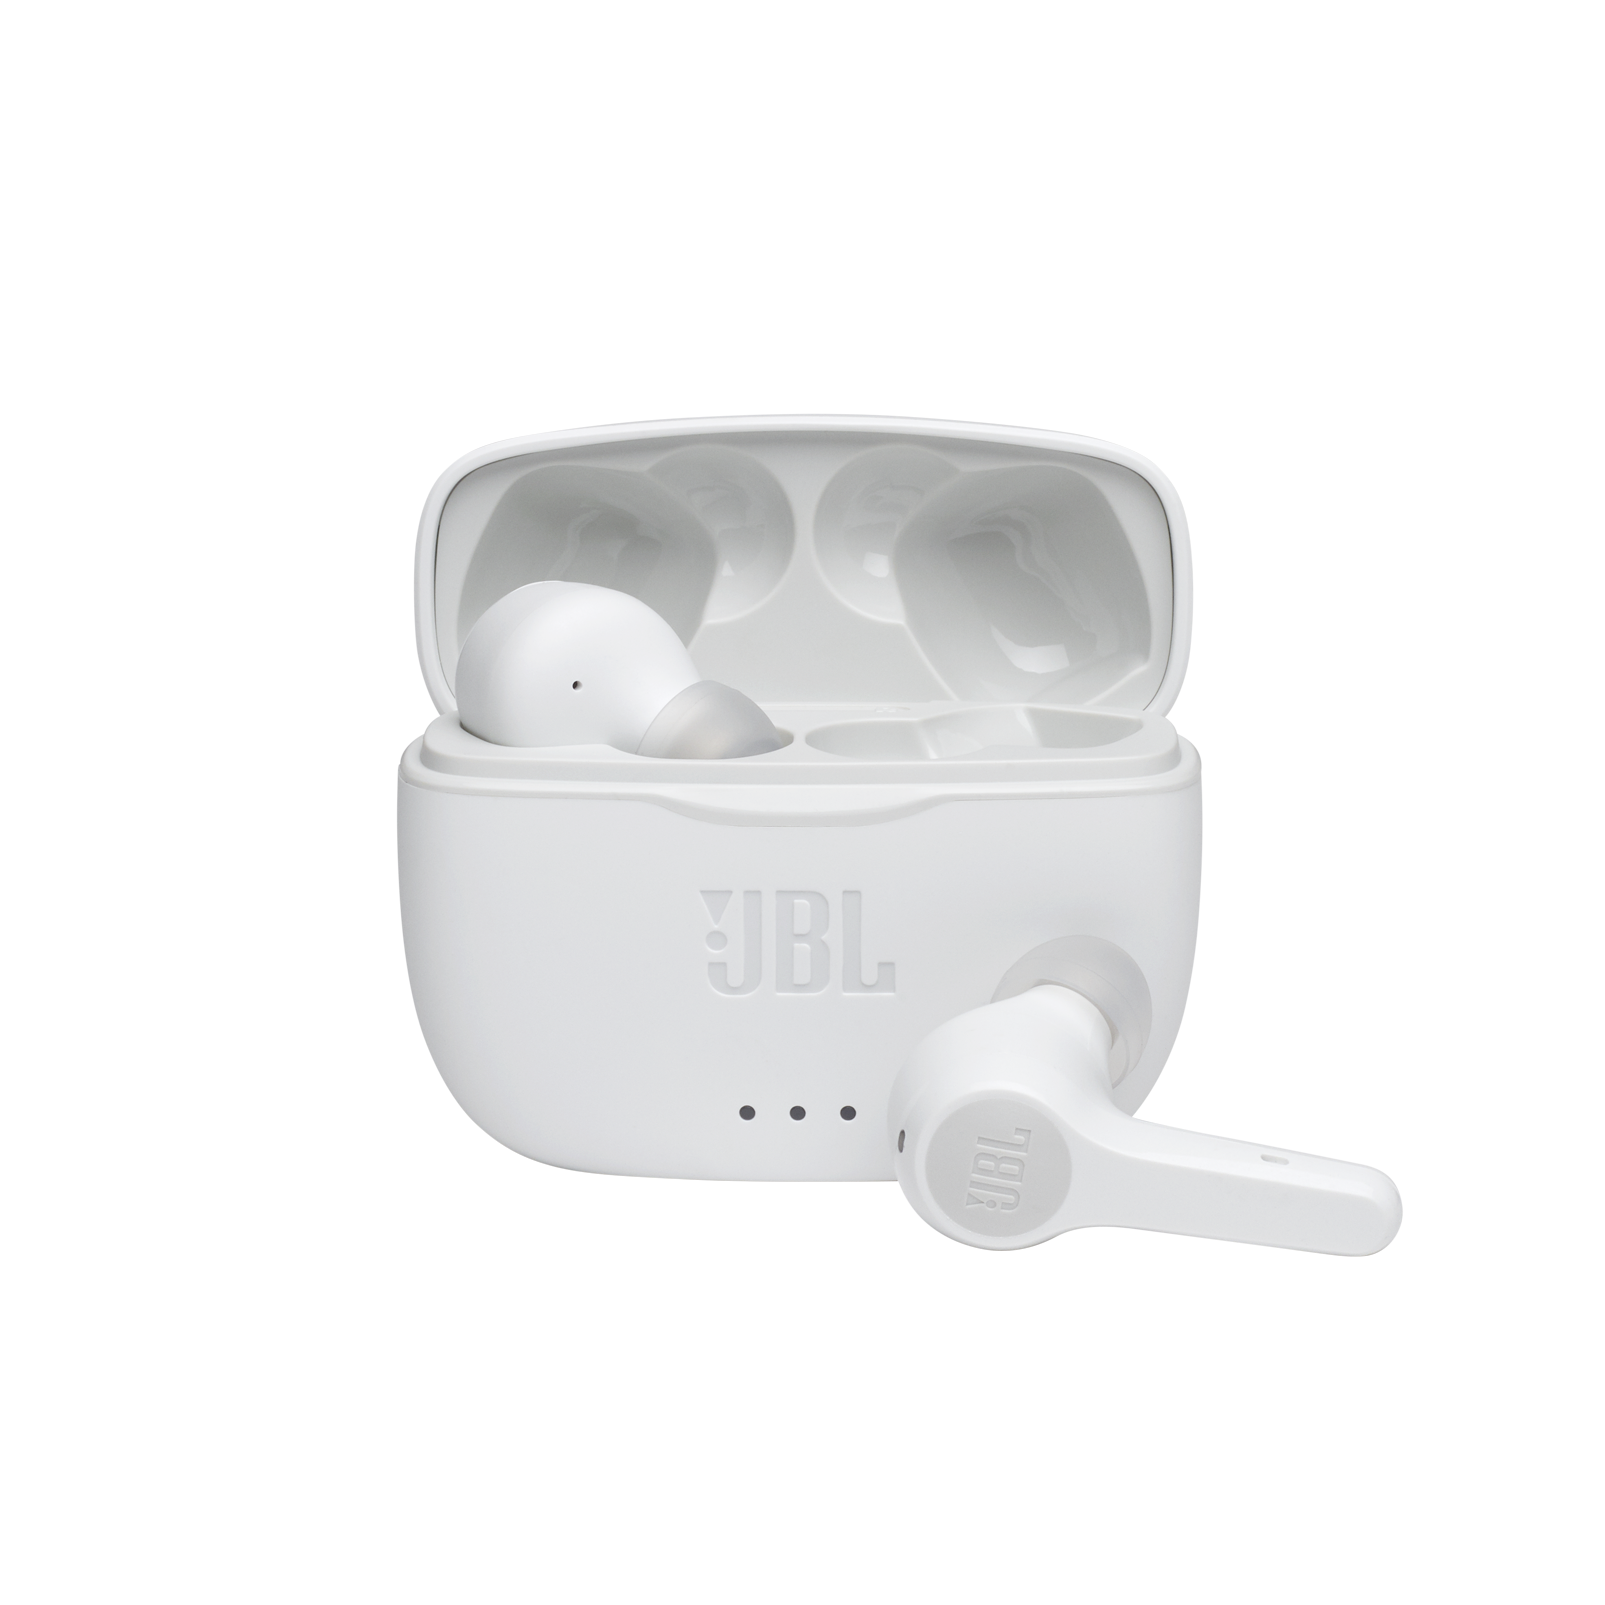 JBL TUNE 215TWS - White - True wireless earbud headphones - Hero